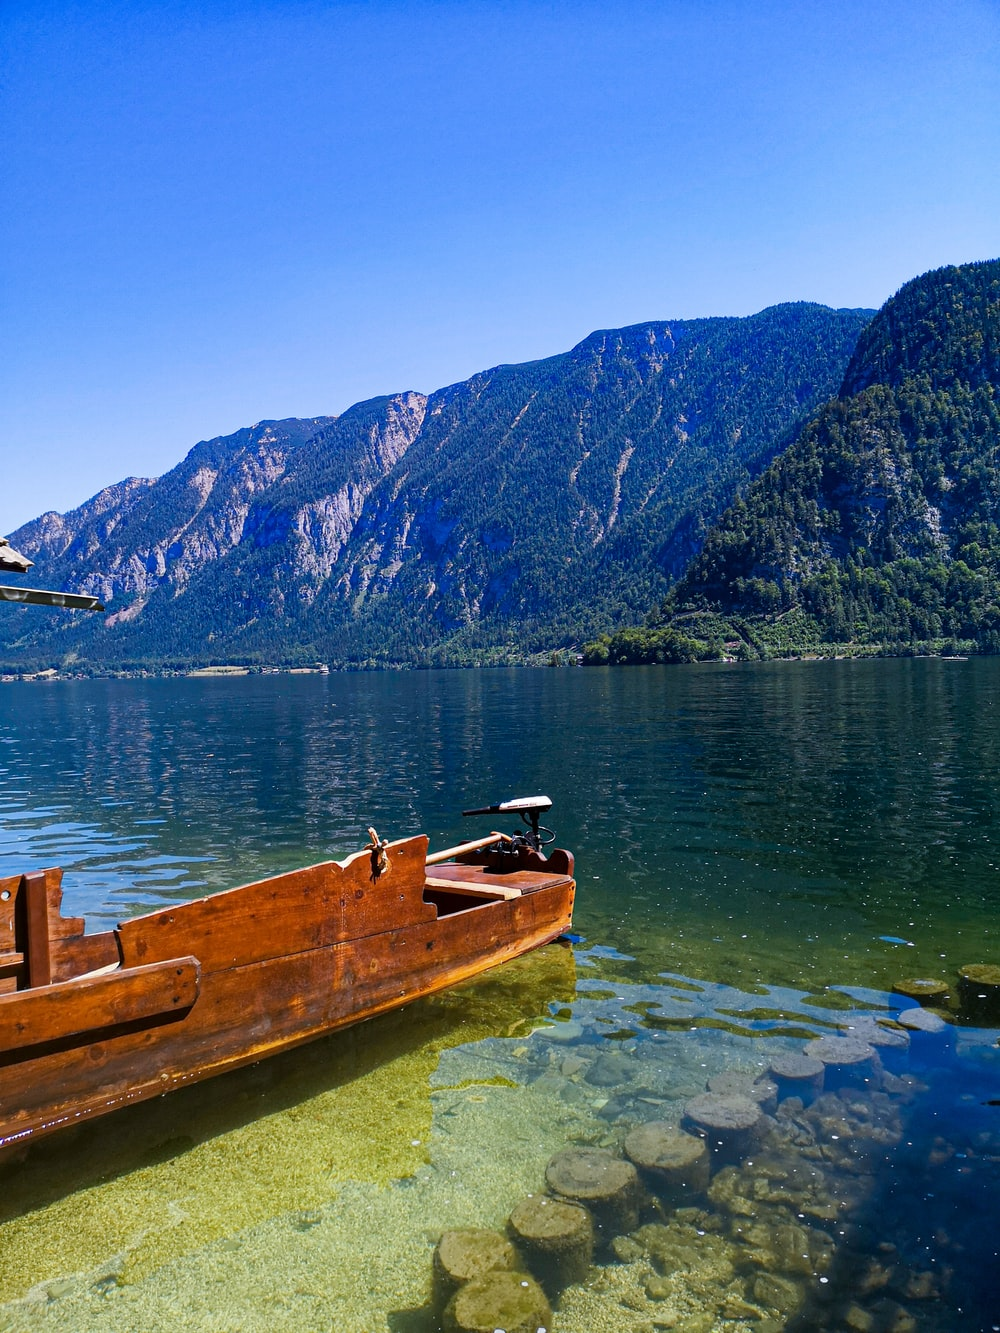 brown wooden boat on water near mountain during daytime